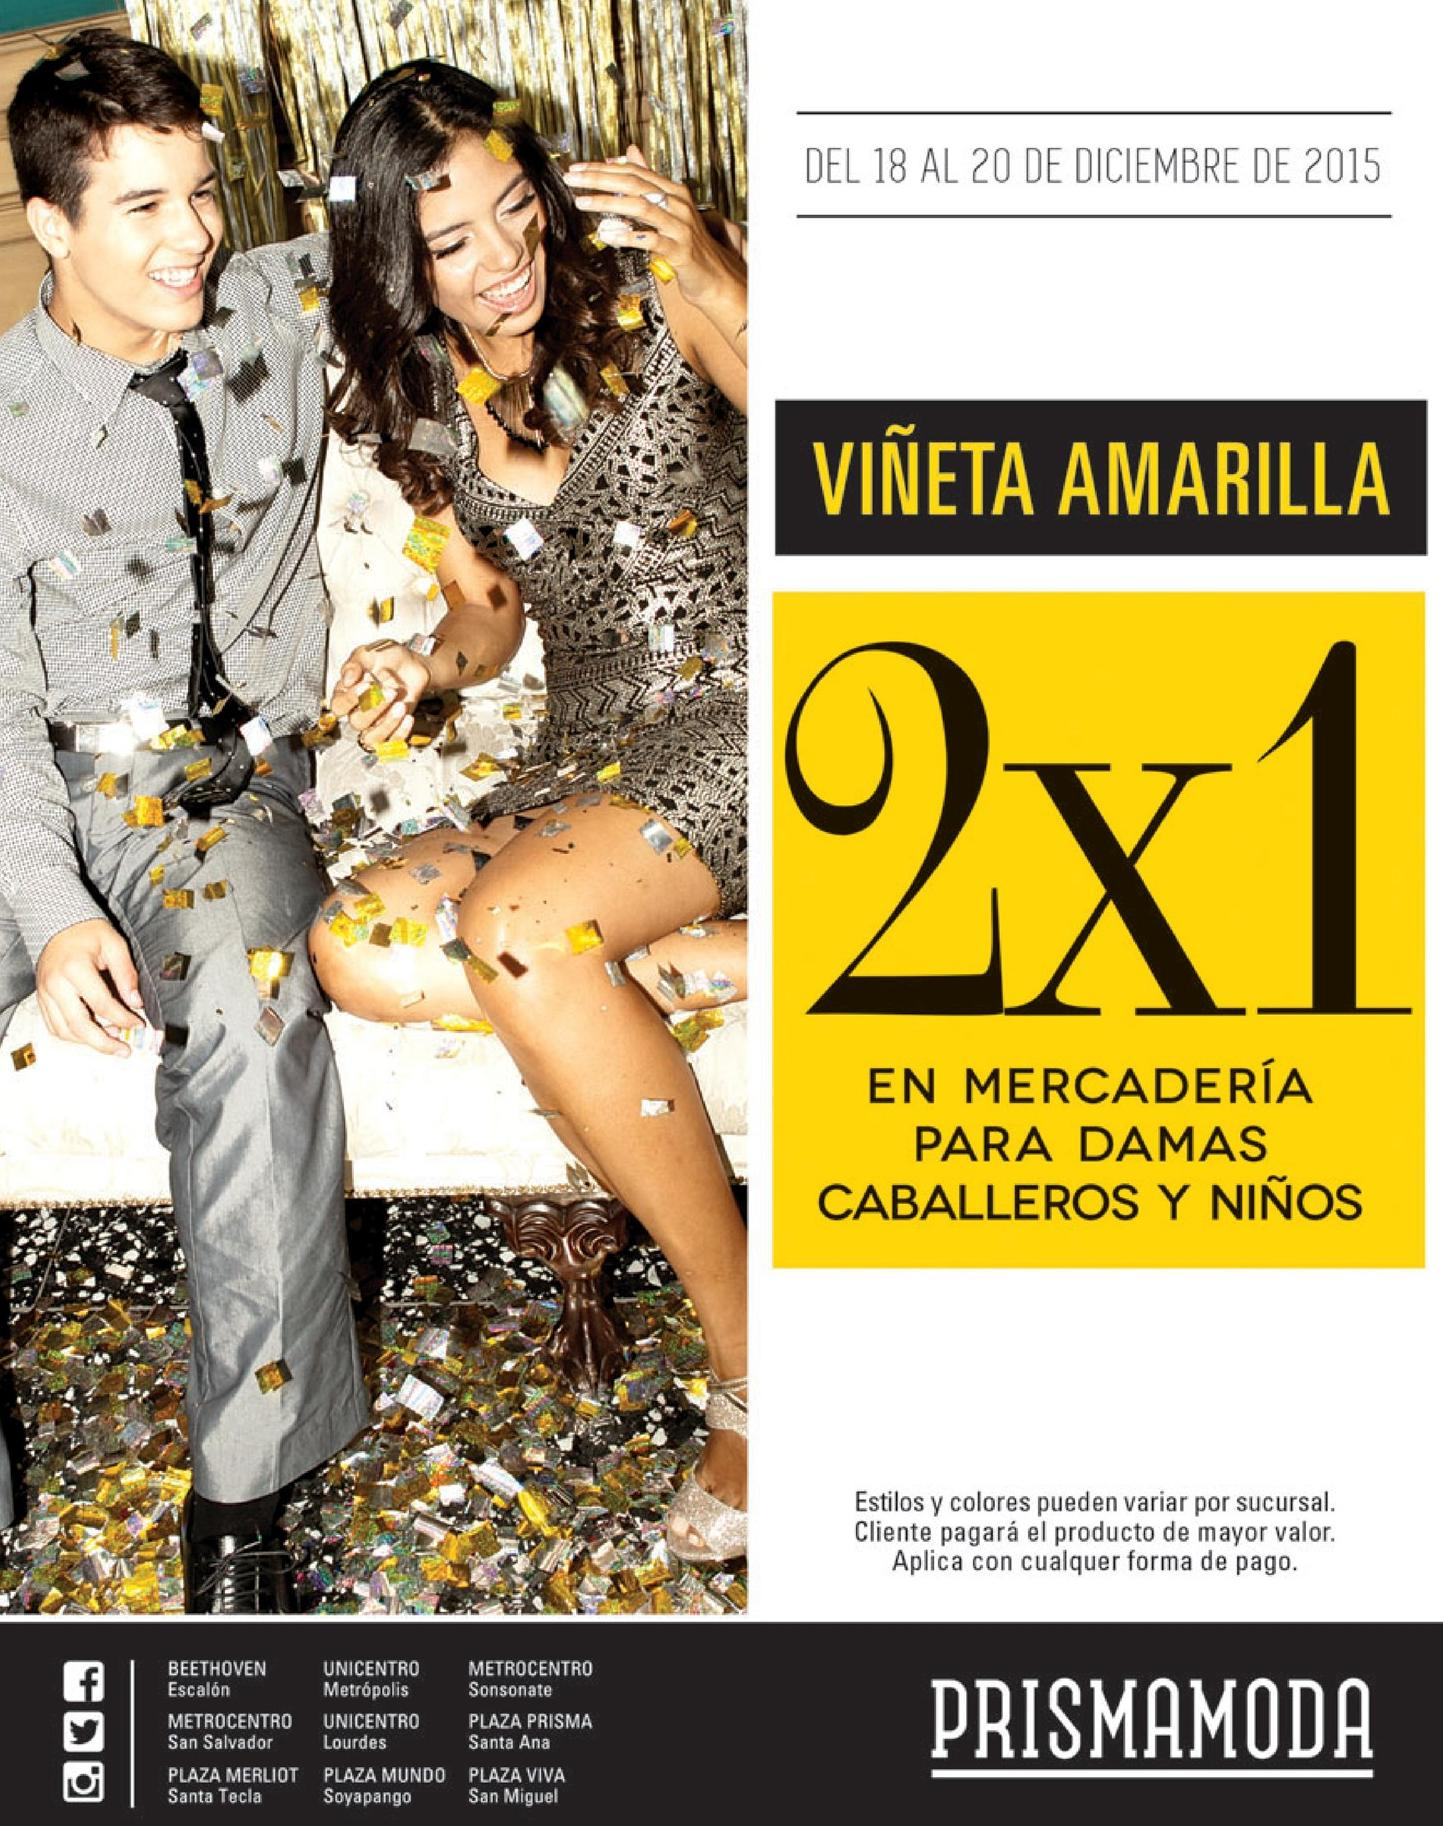 Afeter party great discounts PRISMA MODA - 18dic15